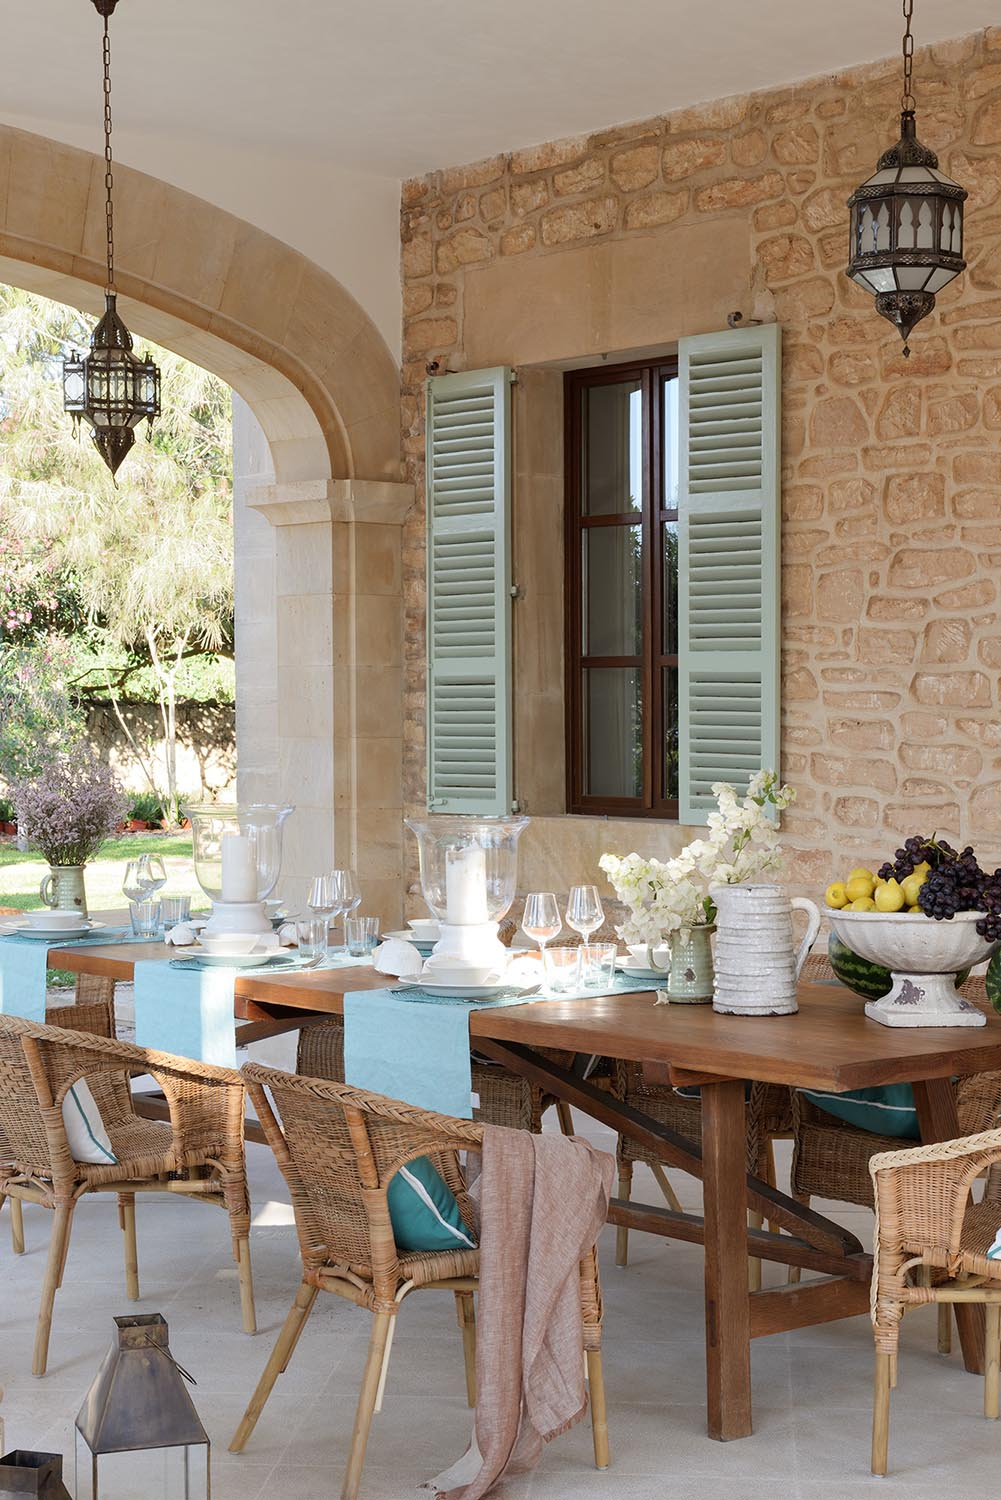 A luxury retreat in mallorca cal reiet holistic retreat for Design boutique hotels mallorca